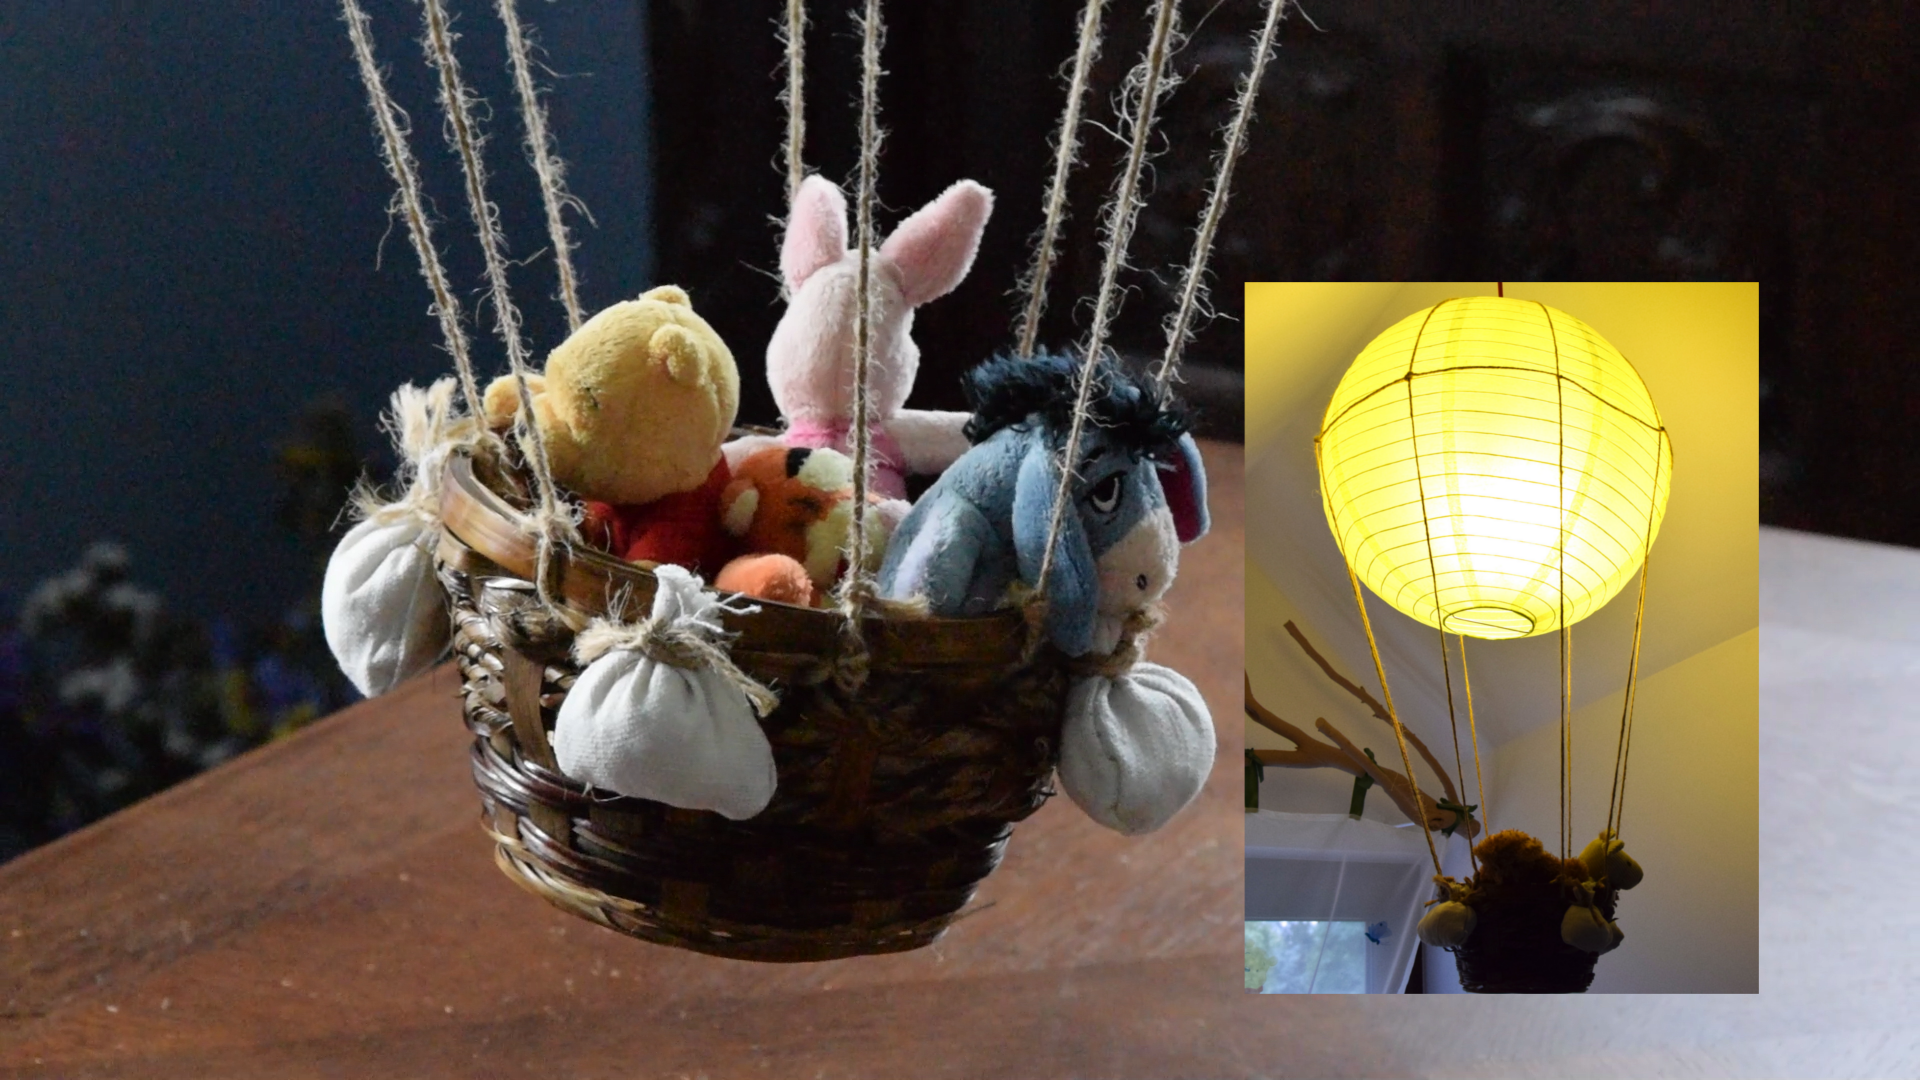 Picture of Cool Balloon Lamp From Cheap Lampshade - Great for Kids